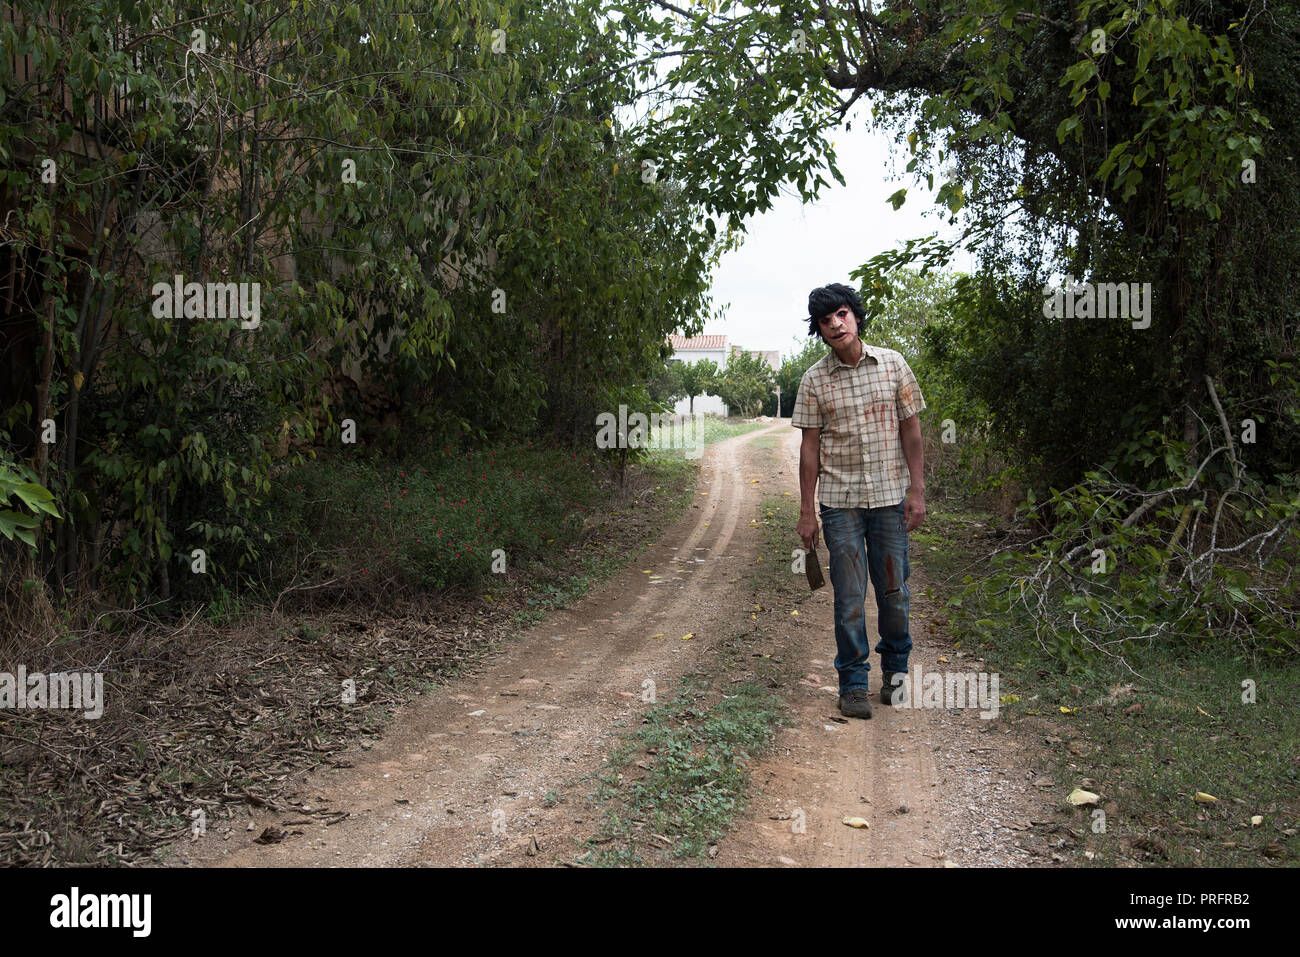 a scary disfigured man, wearing dirty and ragged clothes, with a bloody and rusty meat cleaver in his hand, walking by a dirty road in a disturbing la Stock Photo